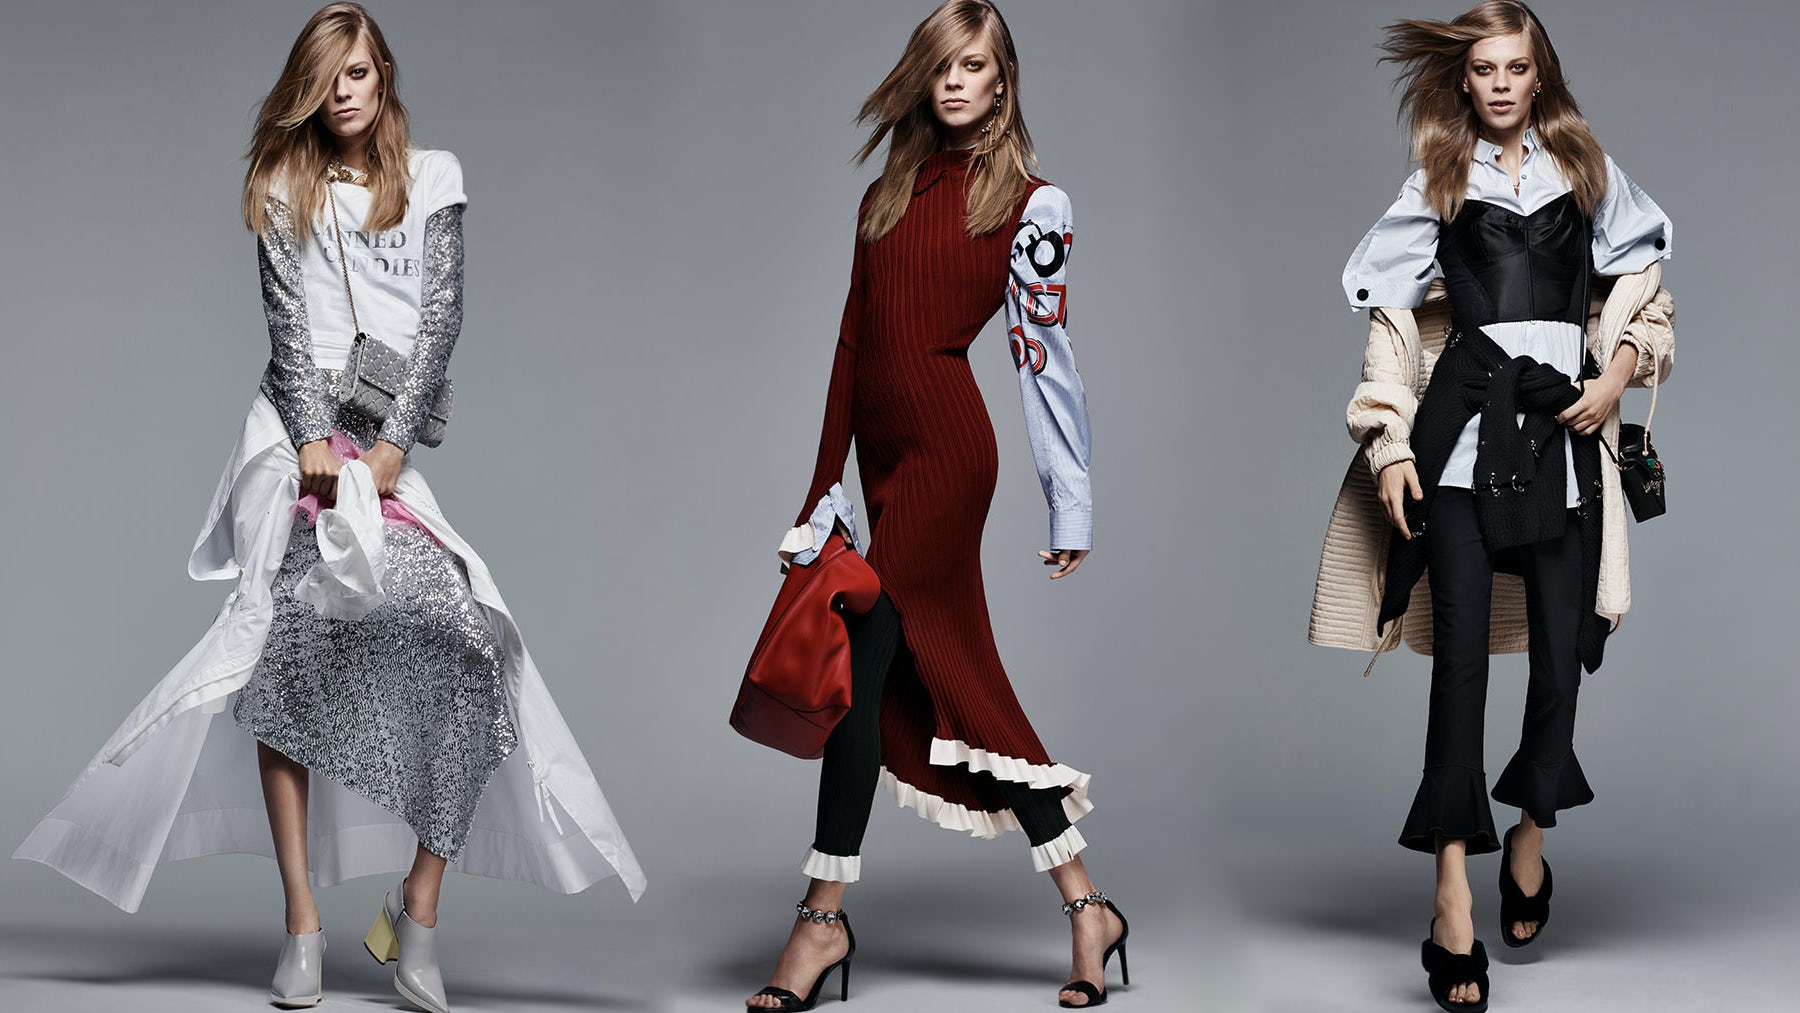 Article cover of The End of Style.com: Condé Nast Inks New Partnership with Farfetch